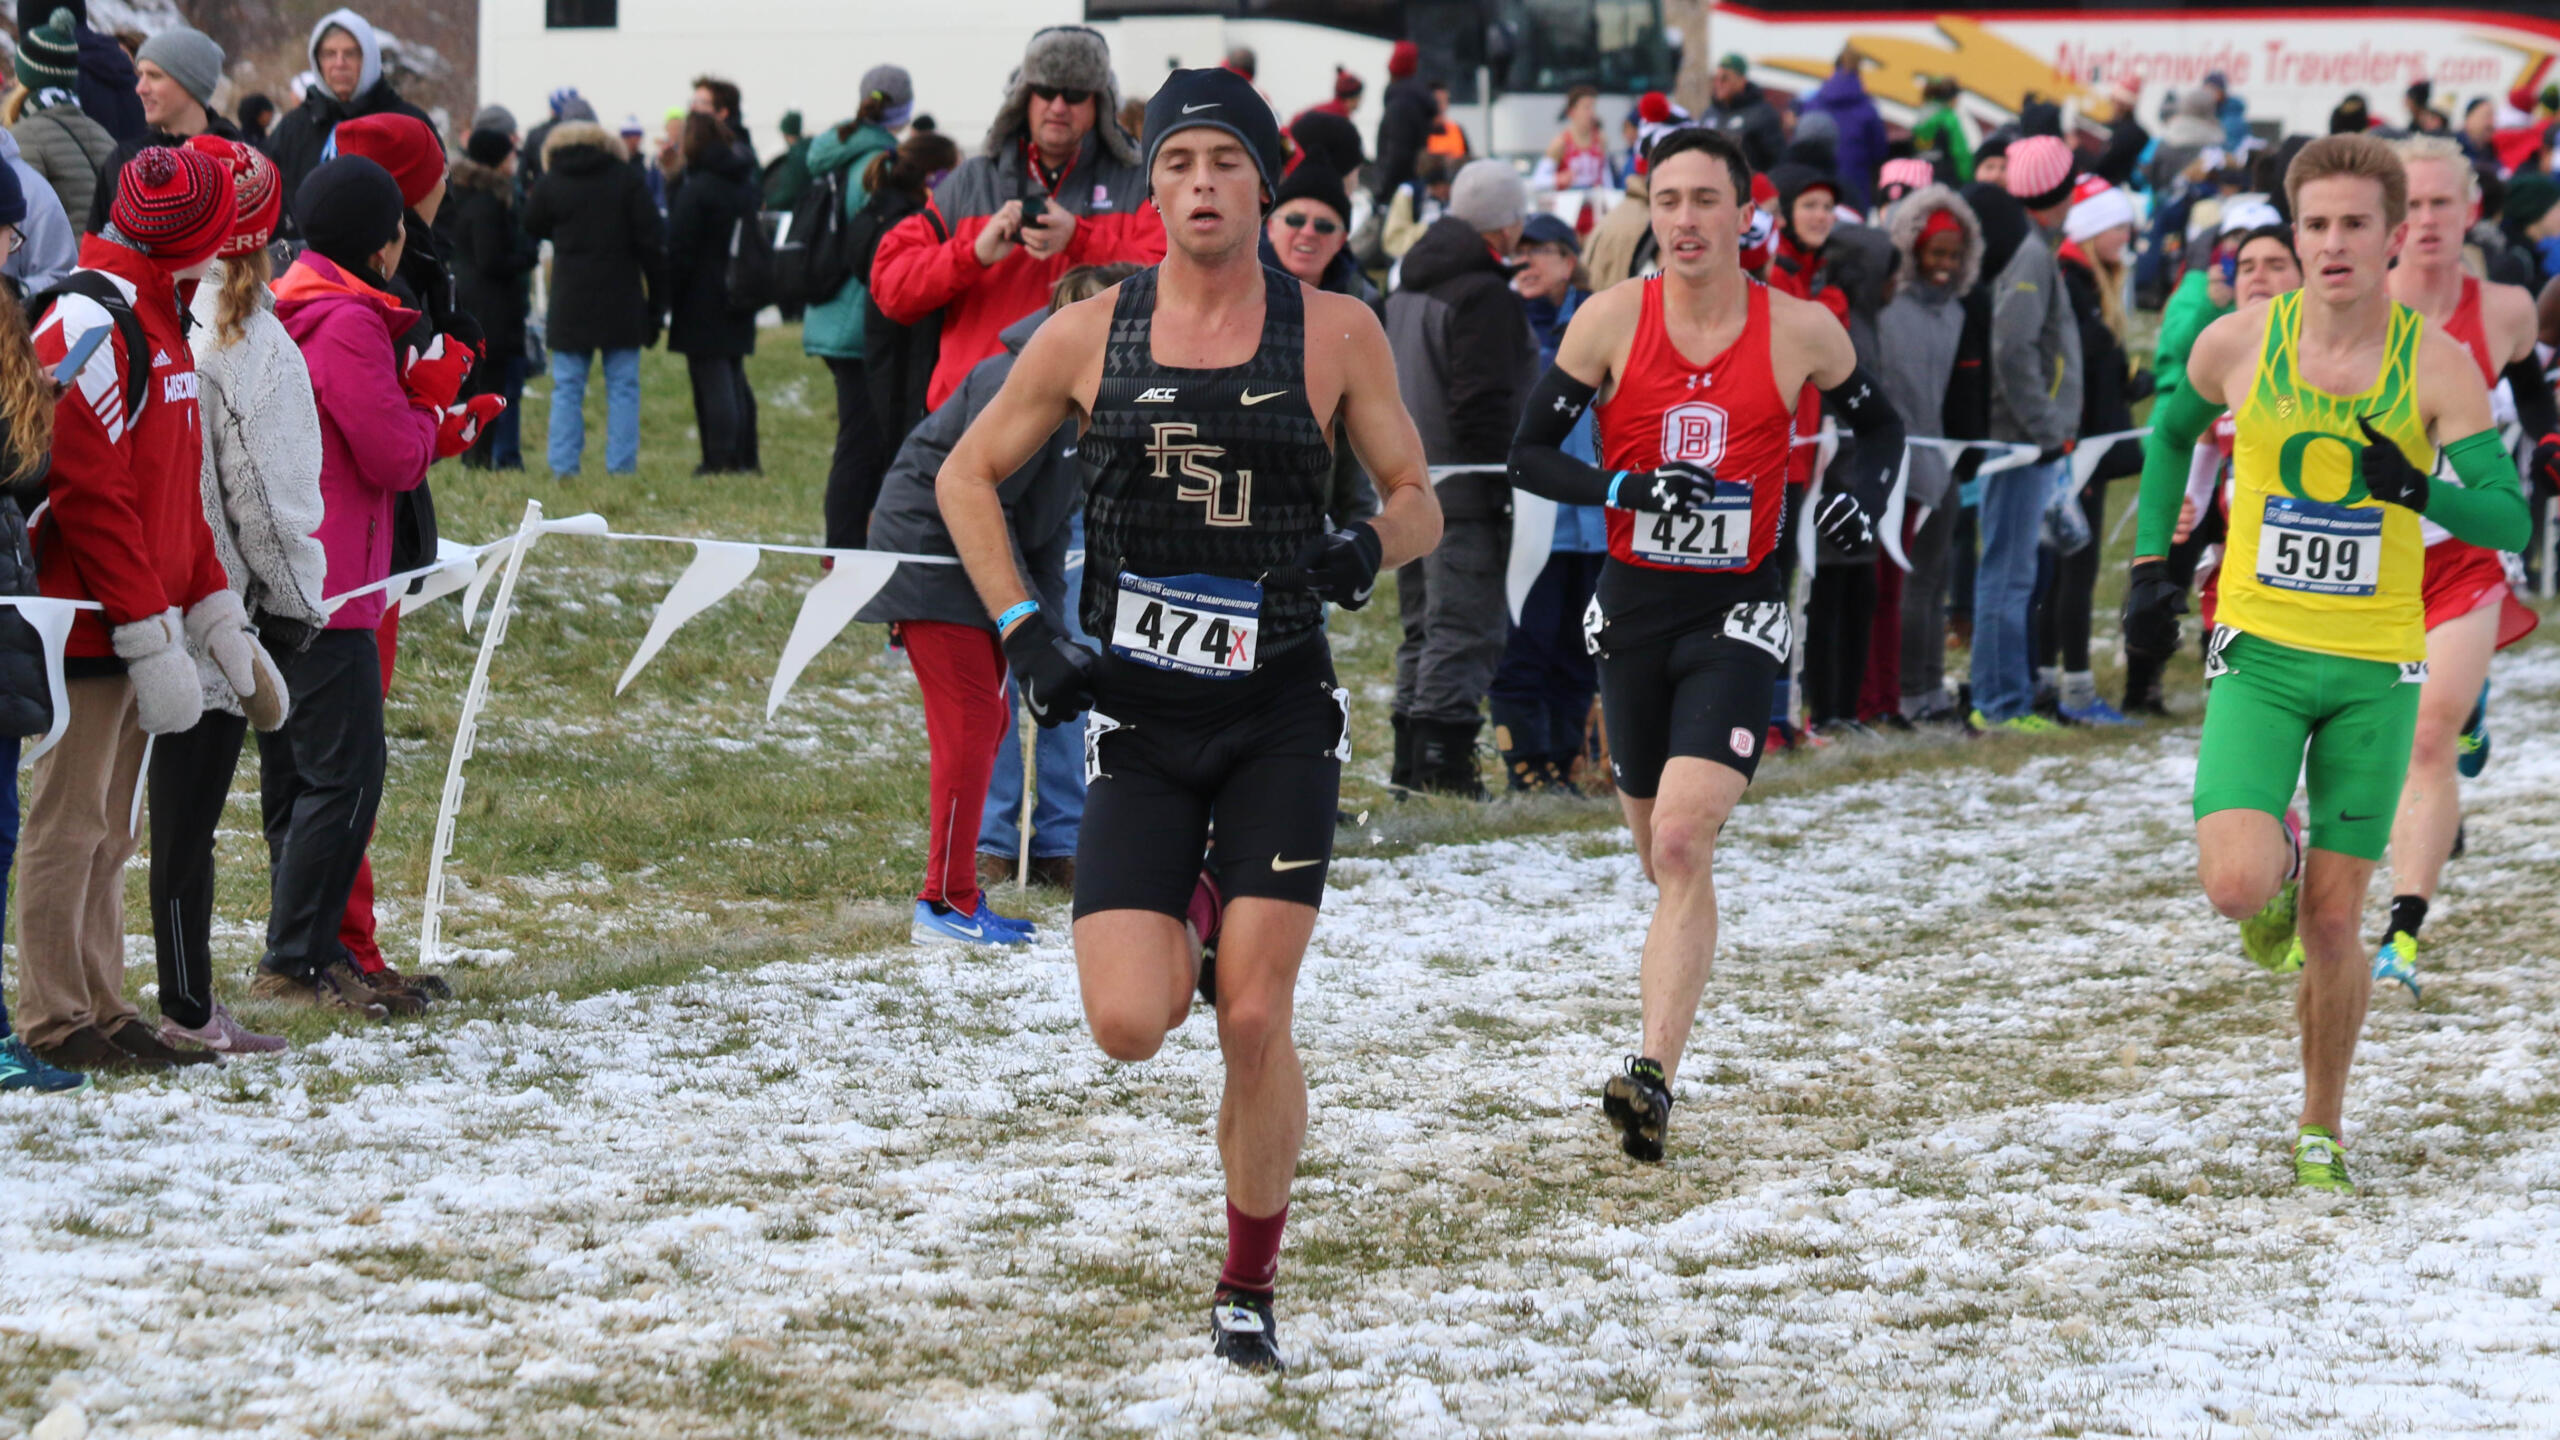 Mircheva Leads NCAA Performance With All-American Finish